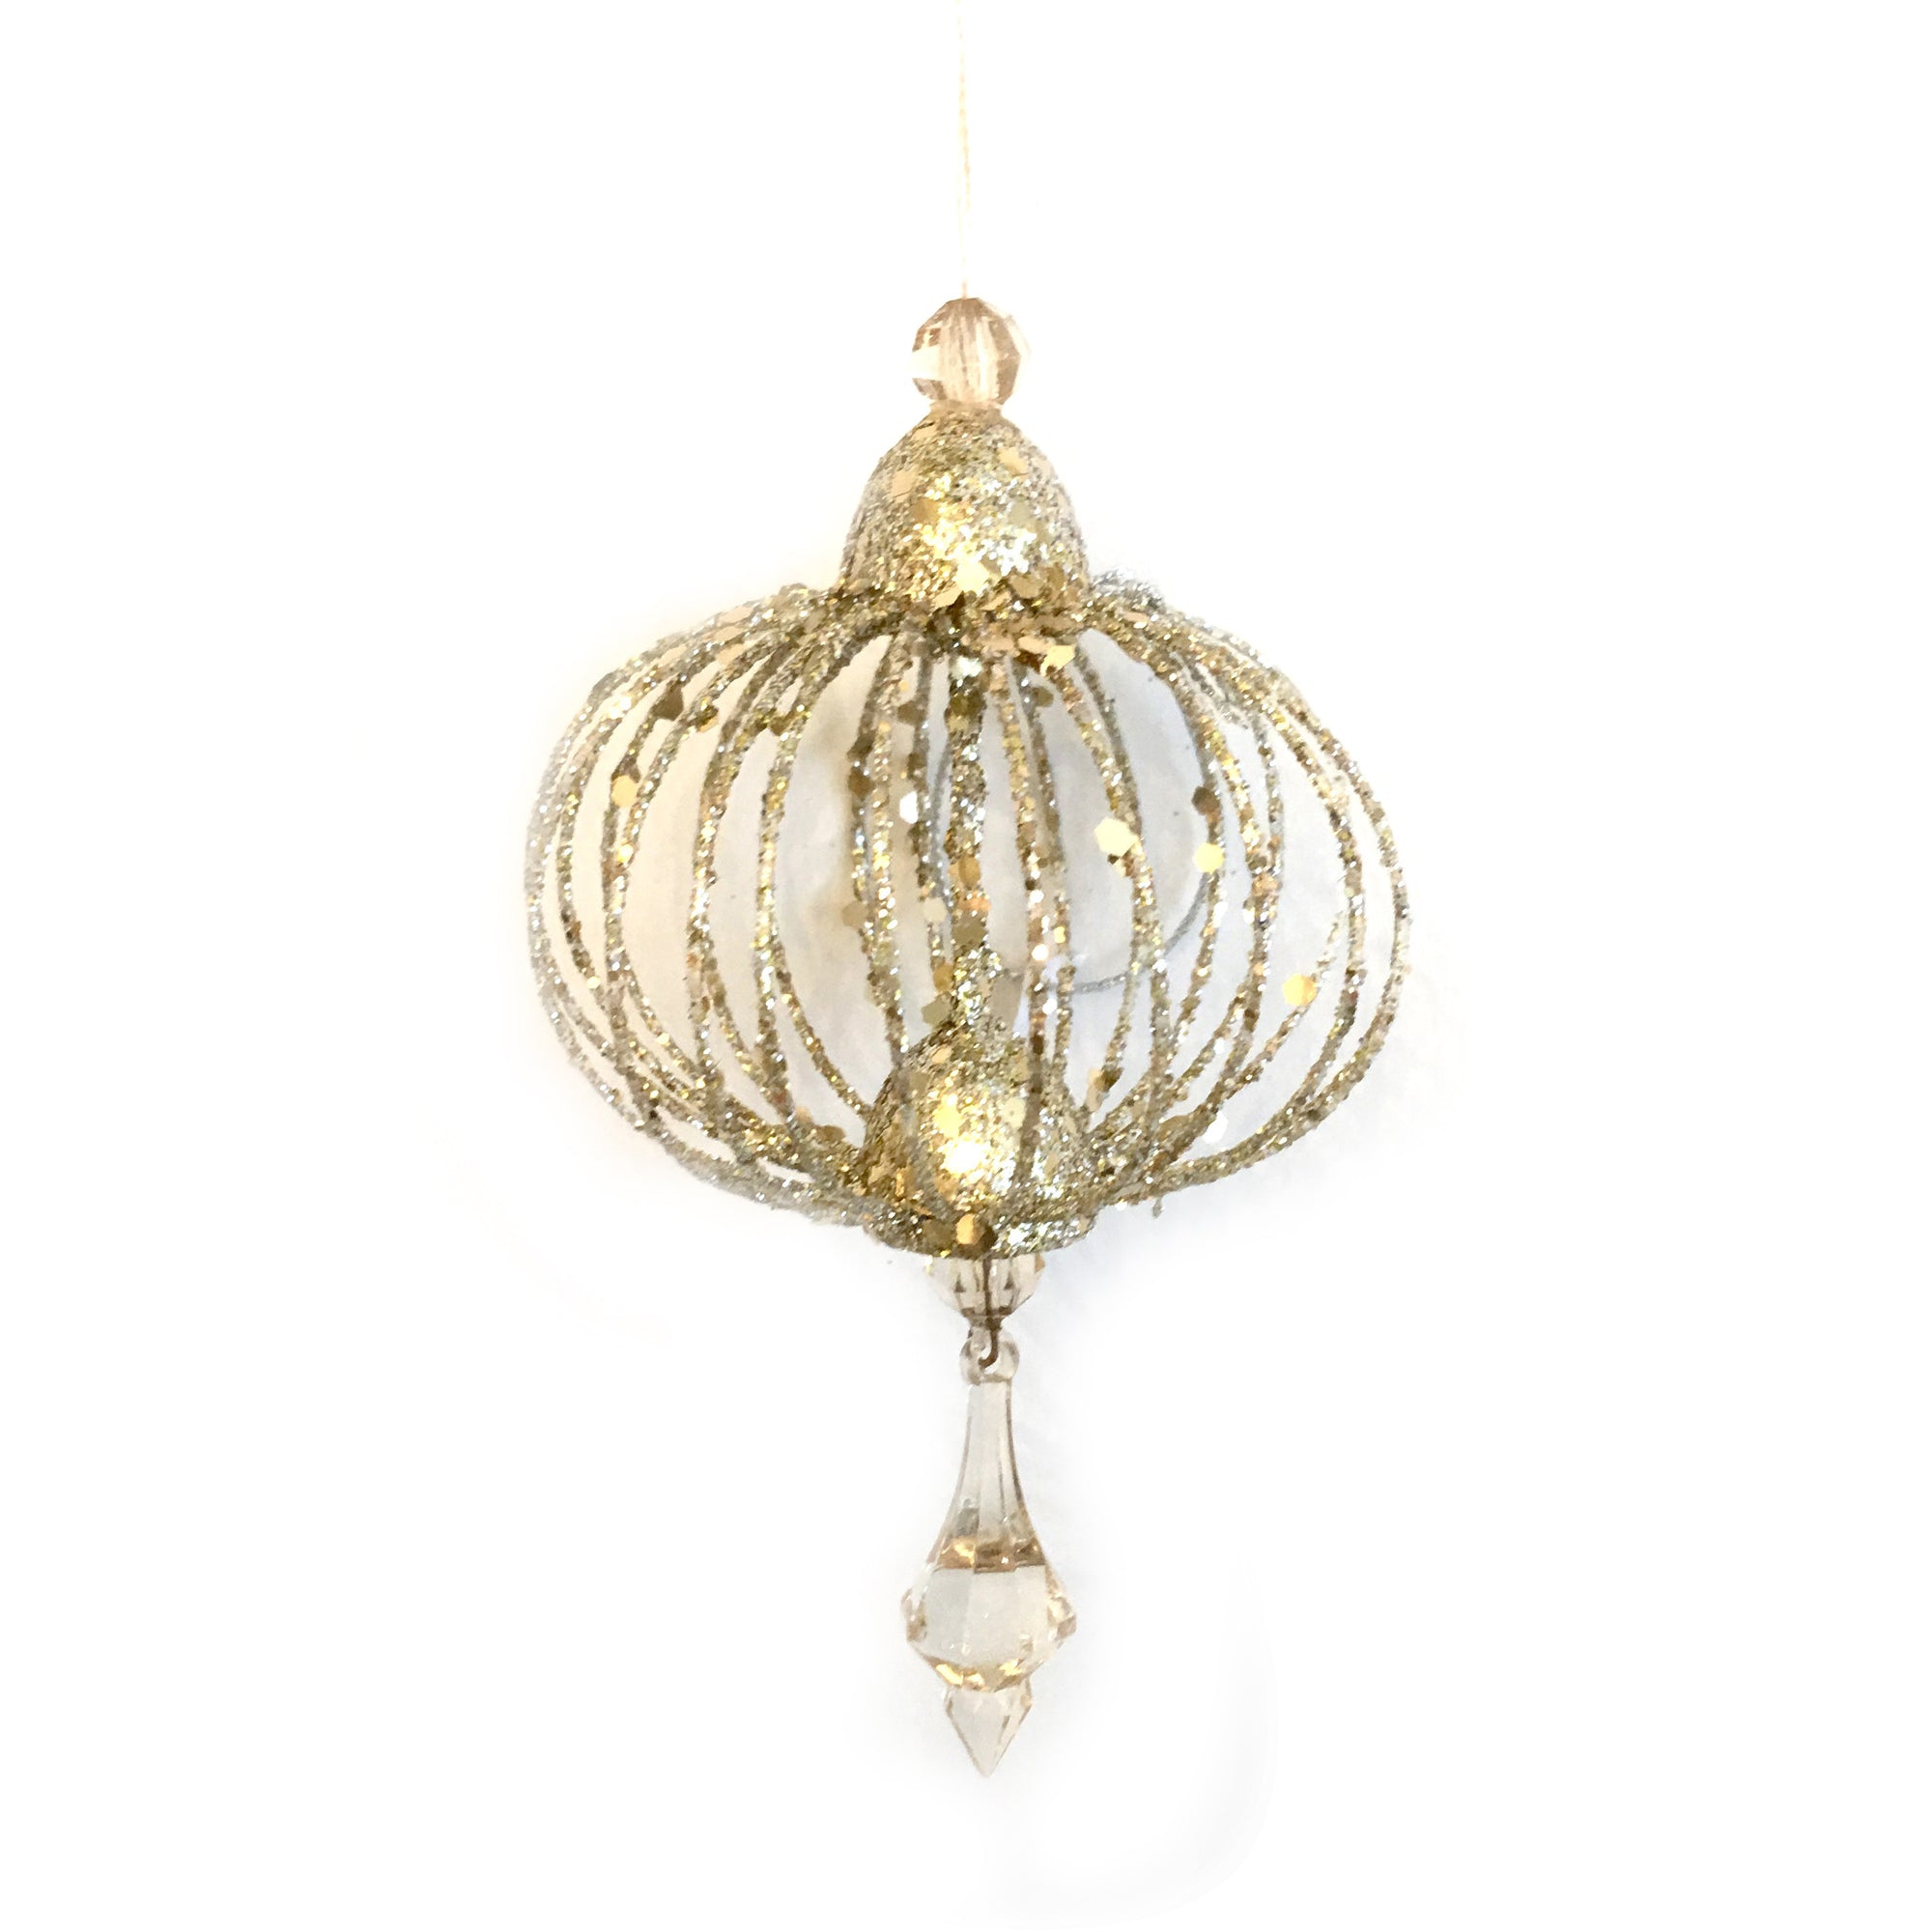 Jim Marvin Champagne Gold Wire Finial Ornament